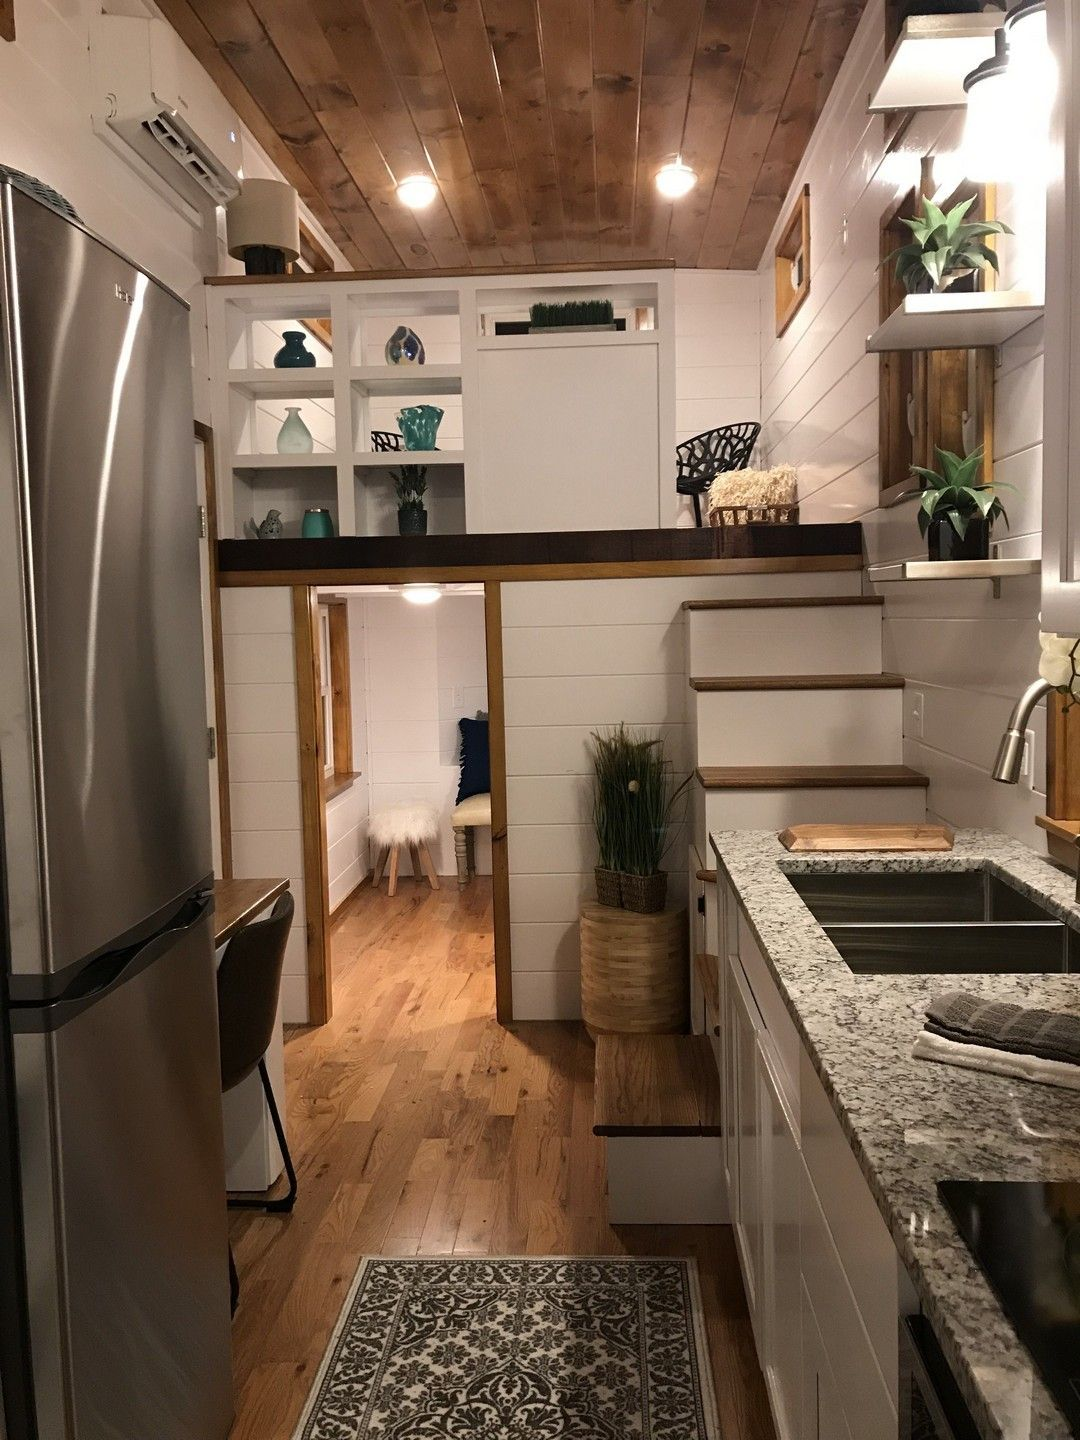 40+ Smart Tricks To Maximize Small Space In Your Tiny Home